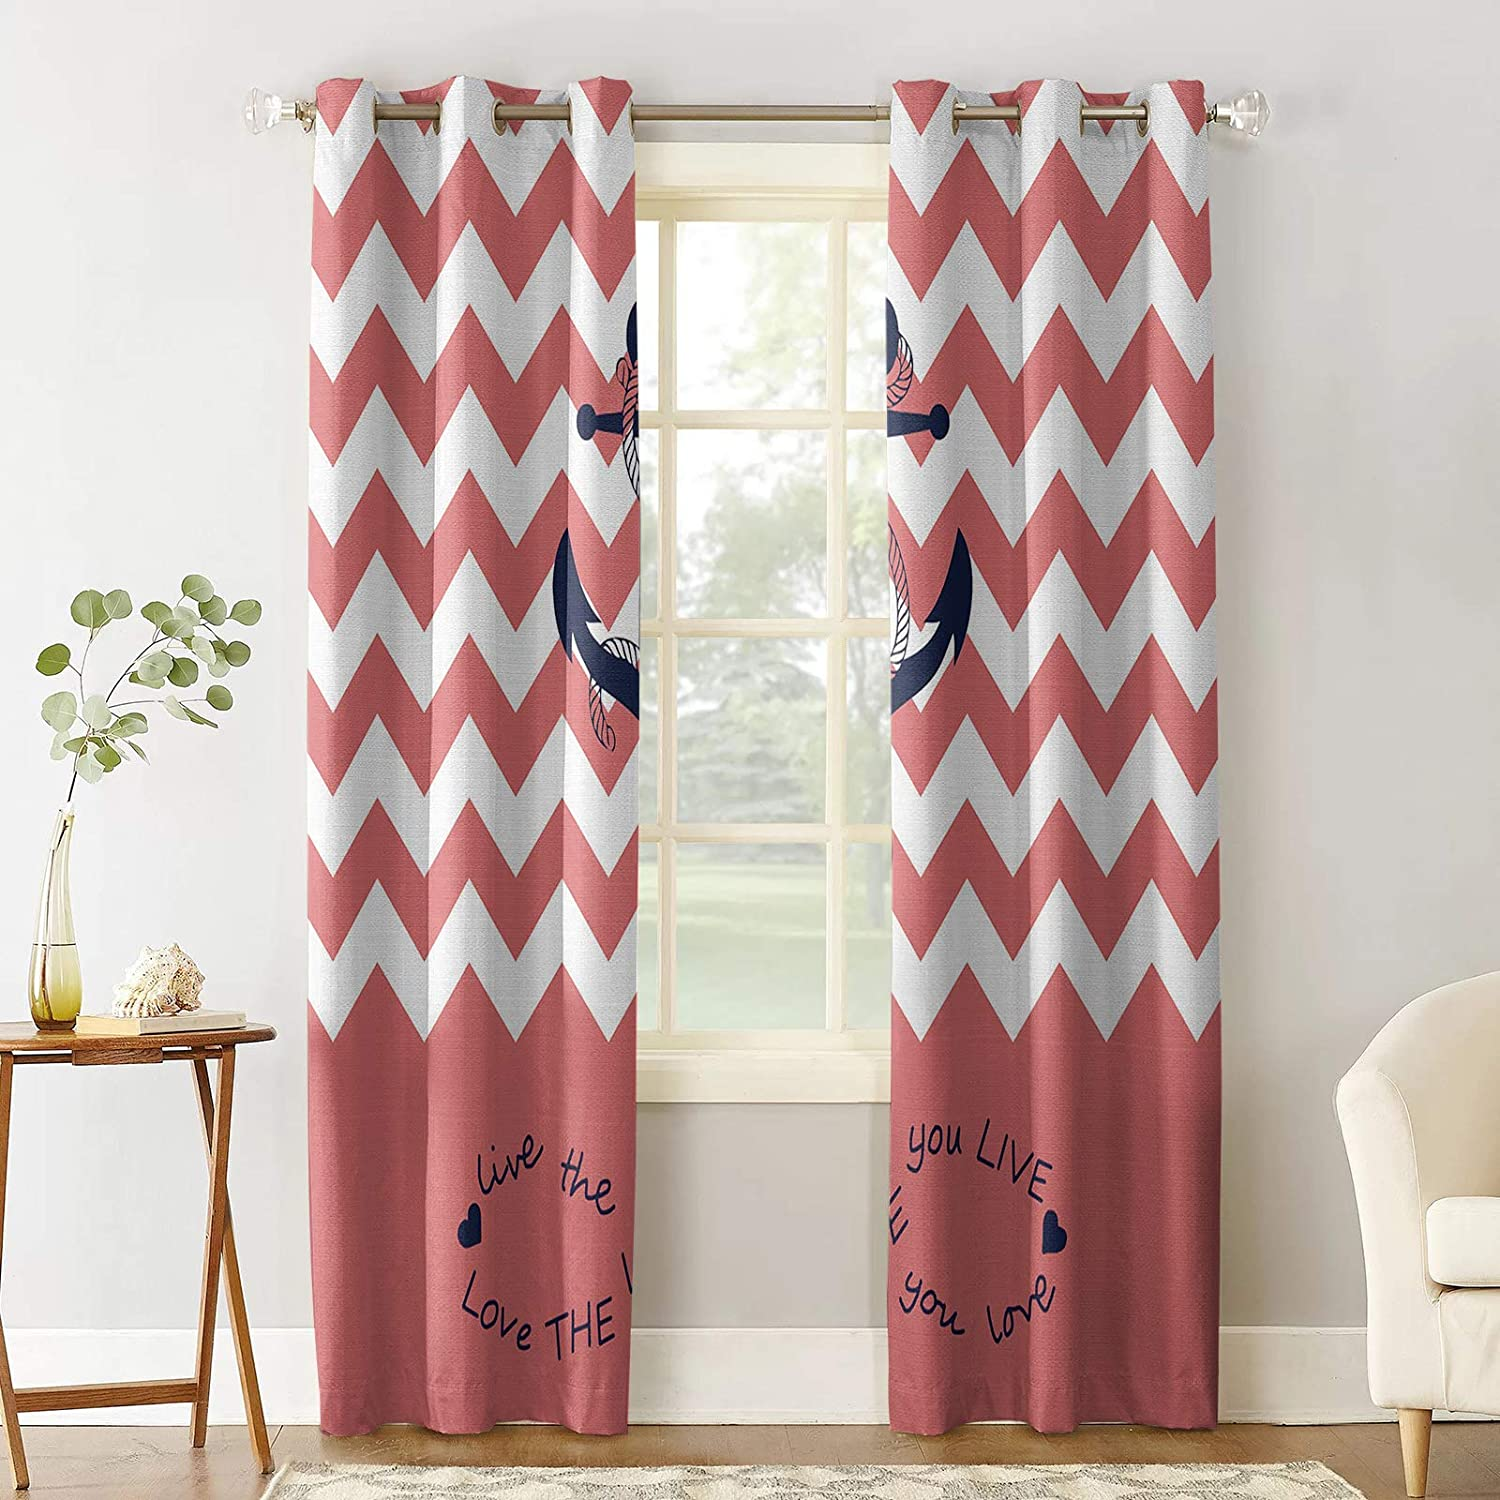 Prime Leader Blackout Curtain for Special sale item Bedroom The Nippon regular agency Life Y Quote Love